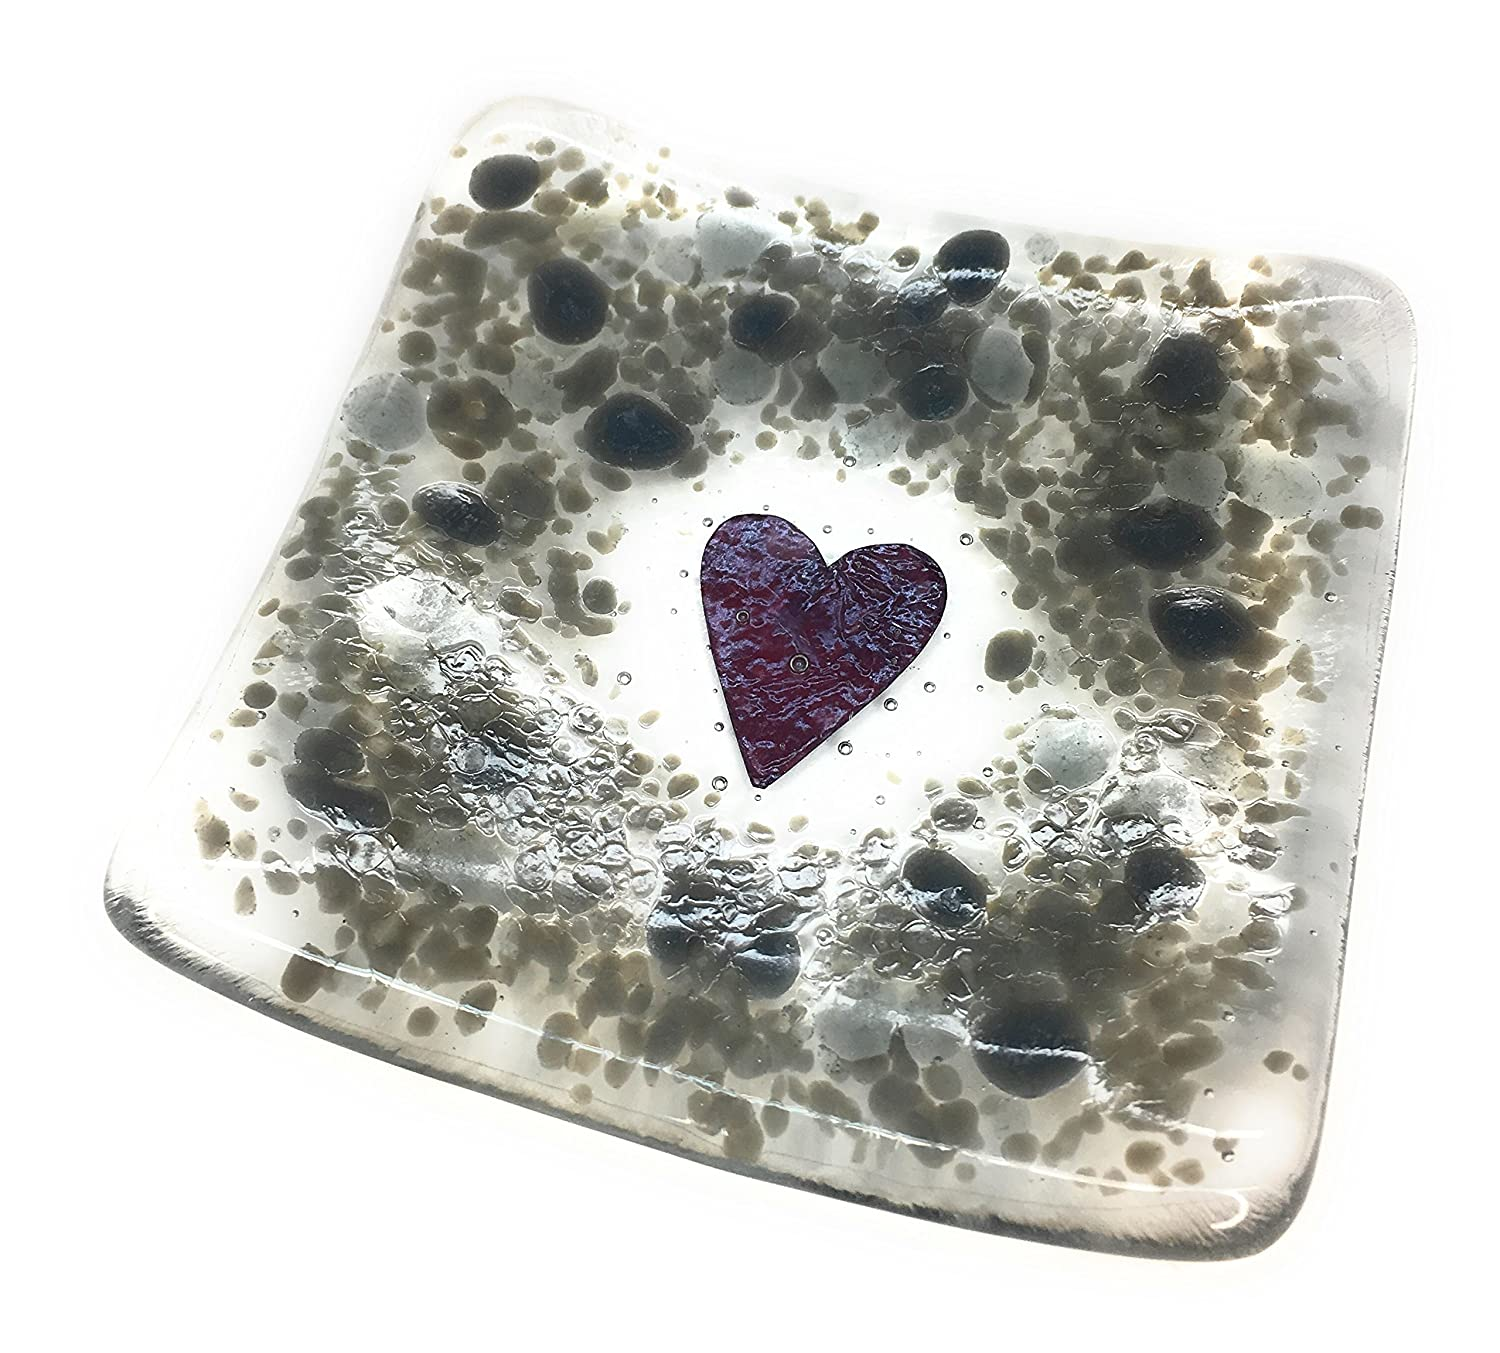 Grey heart fused glass trinket dish tea light candle holder - perfect for earrings, rings, bits & bobs, keys - handmade in East Sussex - free gift wrapping included - Lovely Birthday, Christmas, Wedding, Anniversary, Teachers gift - for your desk, bed